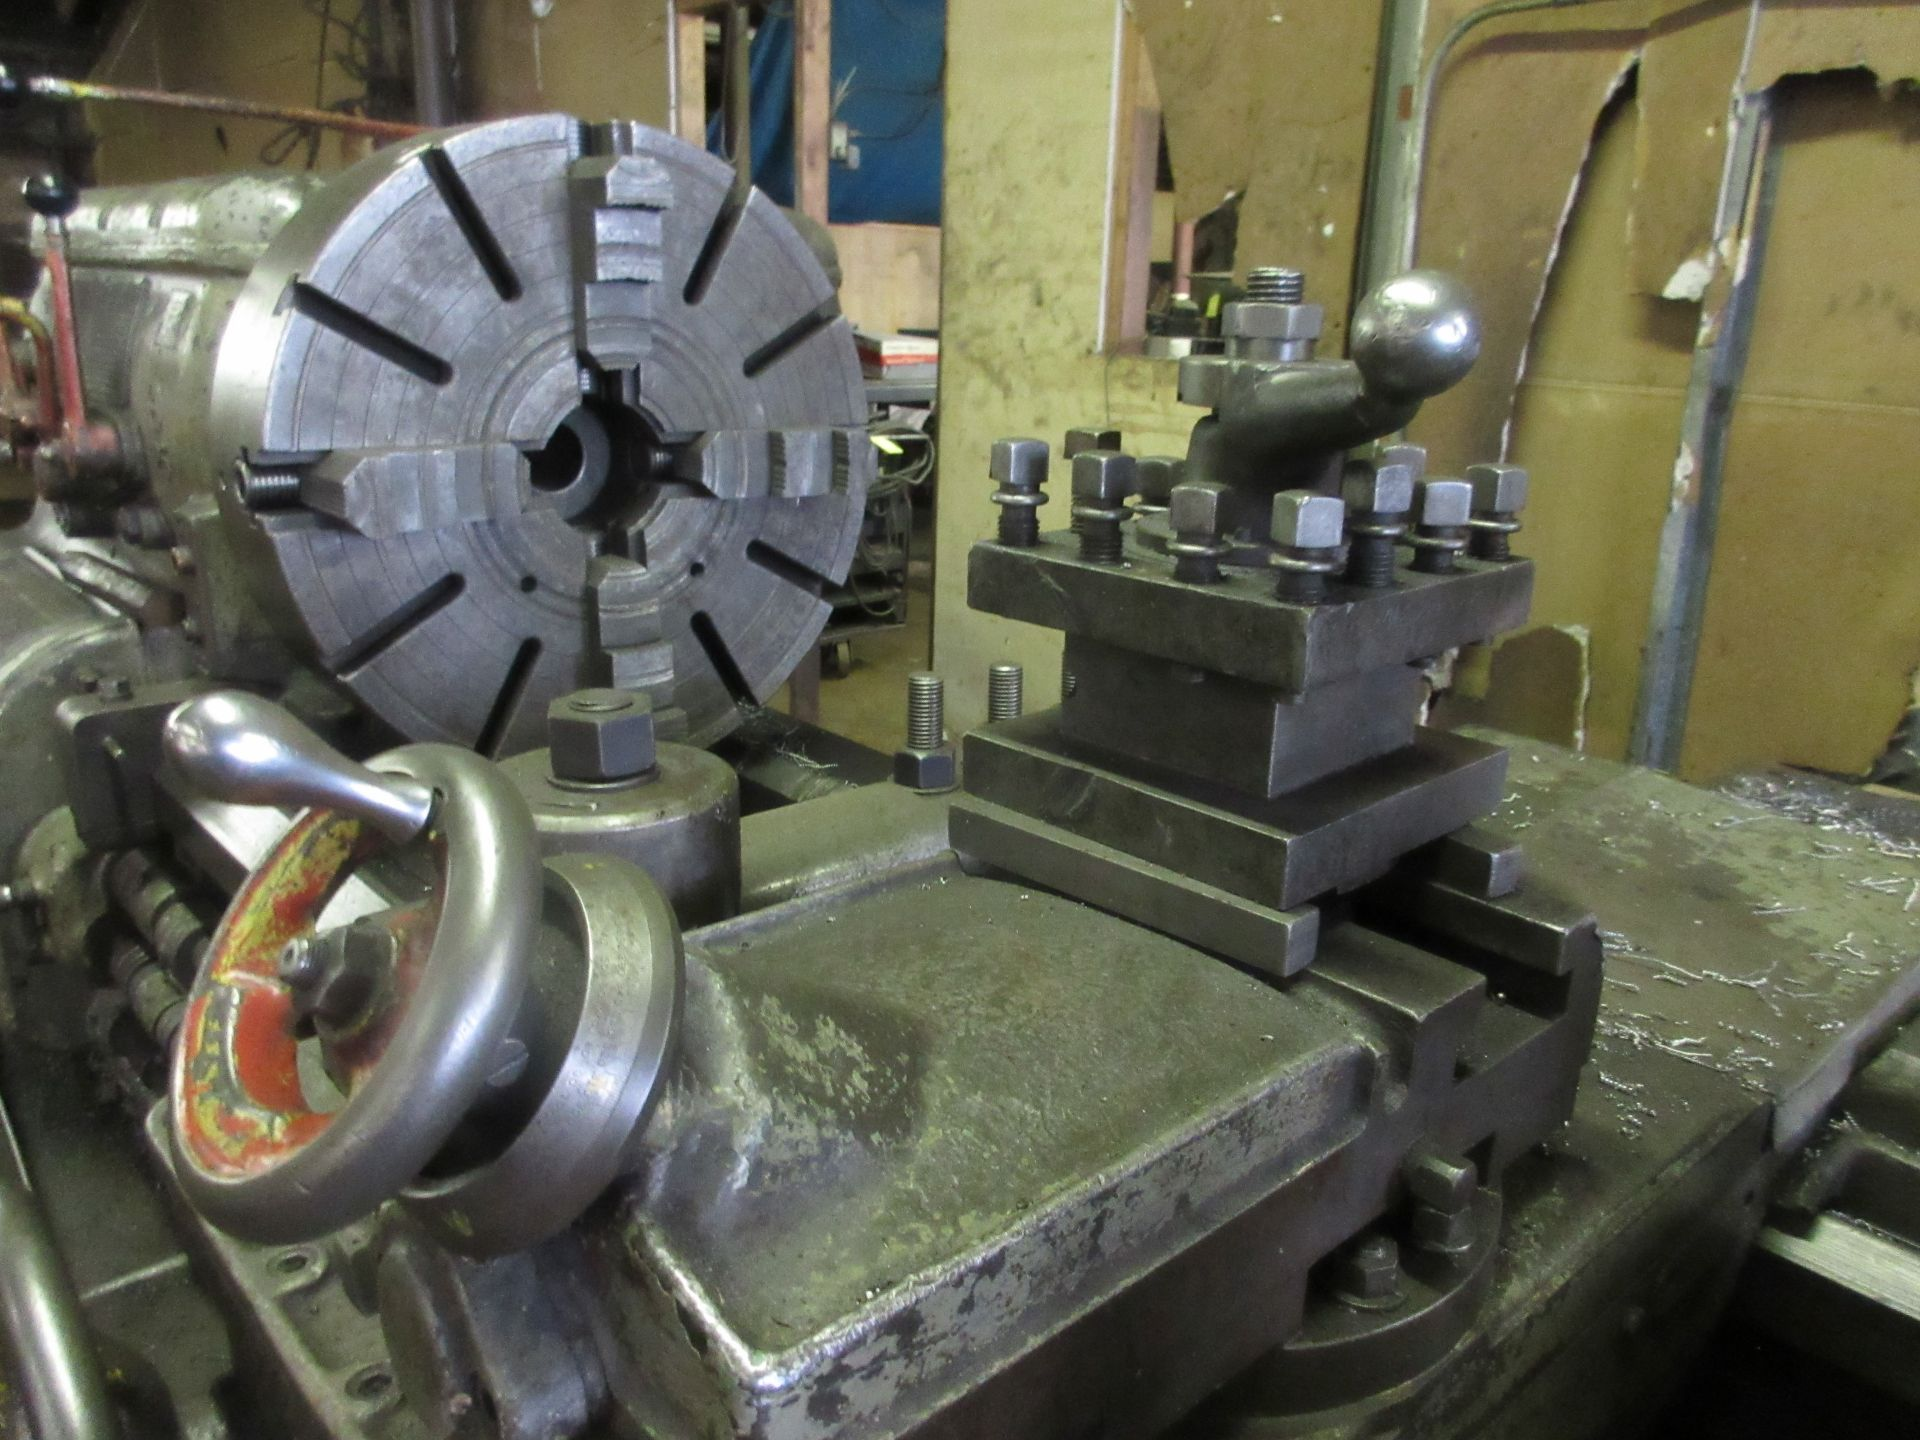 """(1) Axelson 25"""" X 96"""" Lathe S/N 24"""" 4 Jaw Chuck, Steady Rest & Taper Attachment, Tool Post - Image 5 of 5"""